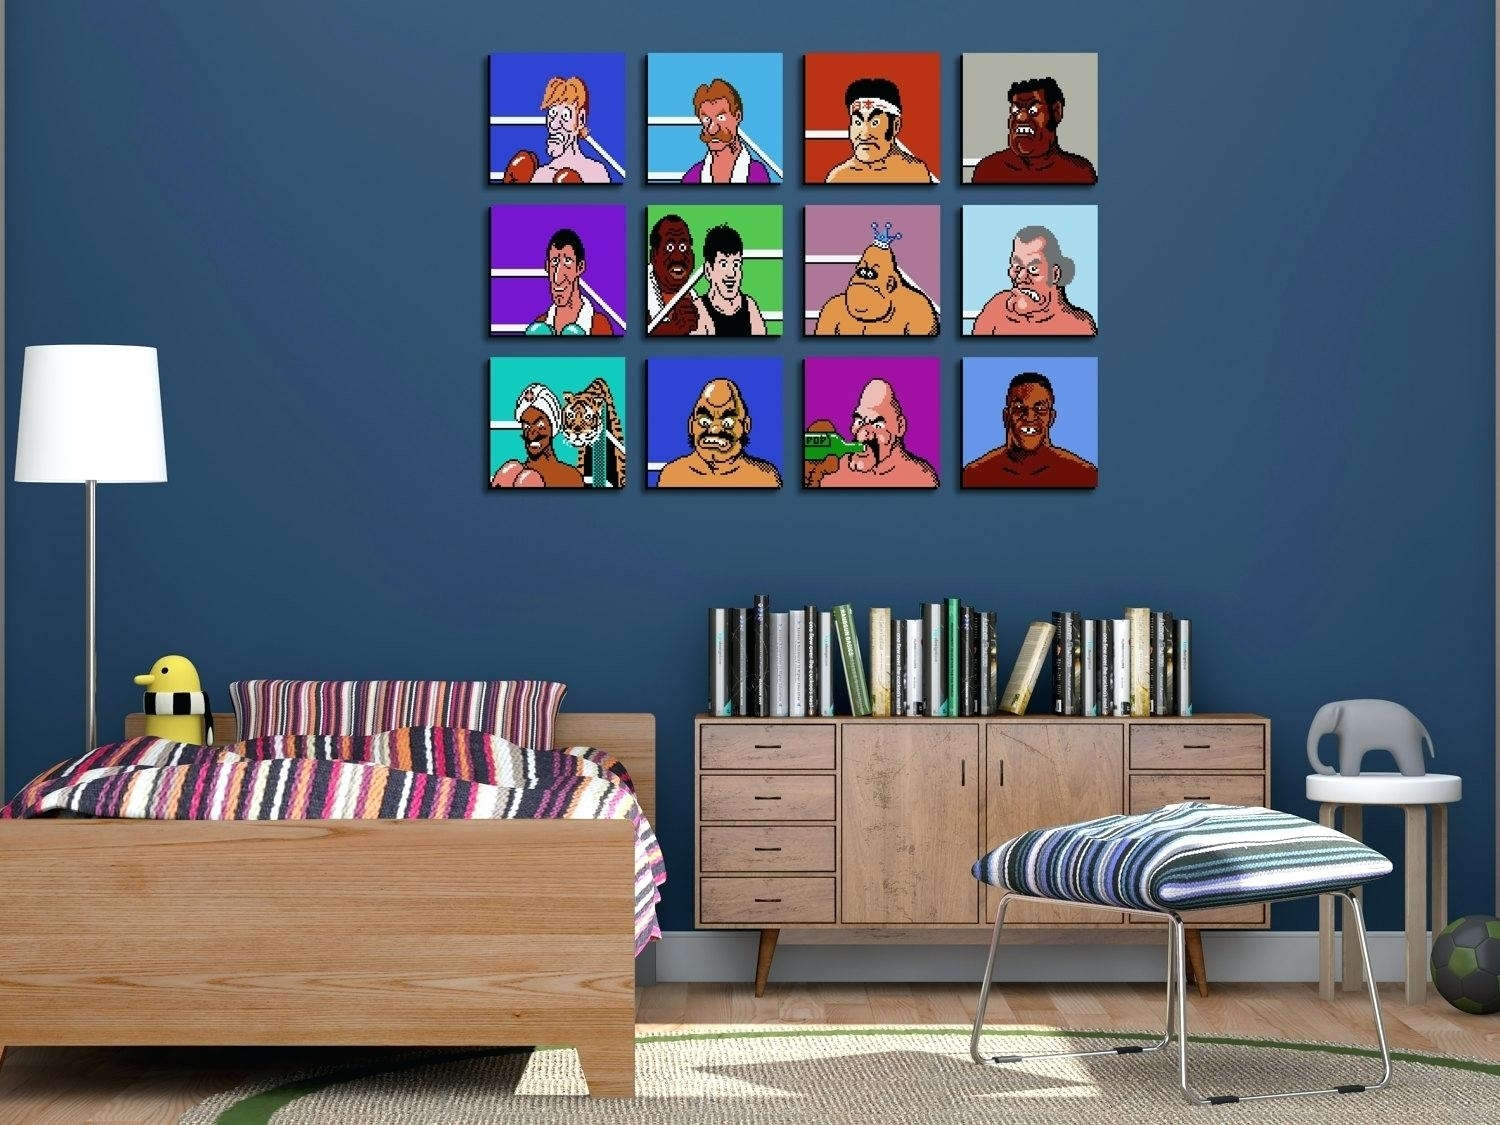 Nintendo Wall Decal Unique Throwback Mike Punch Out Wall Art Zoom In Most Popular Nintendo Wall Art (View 13 of 20)